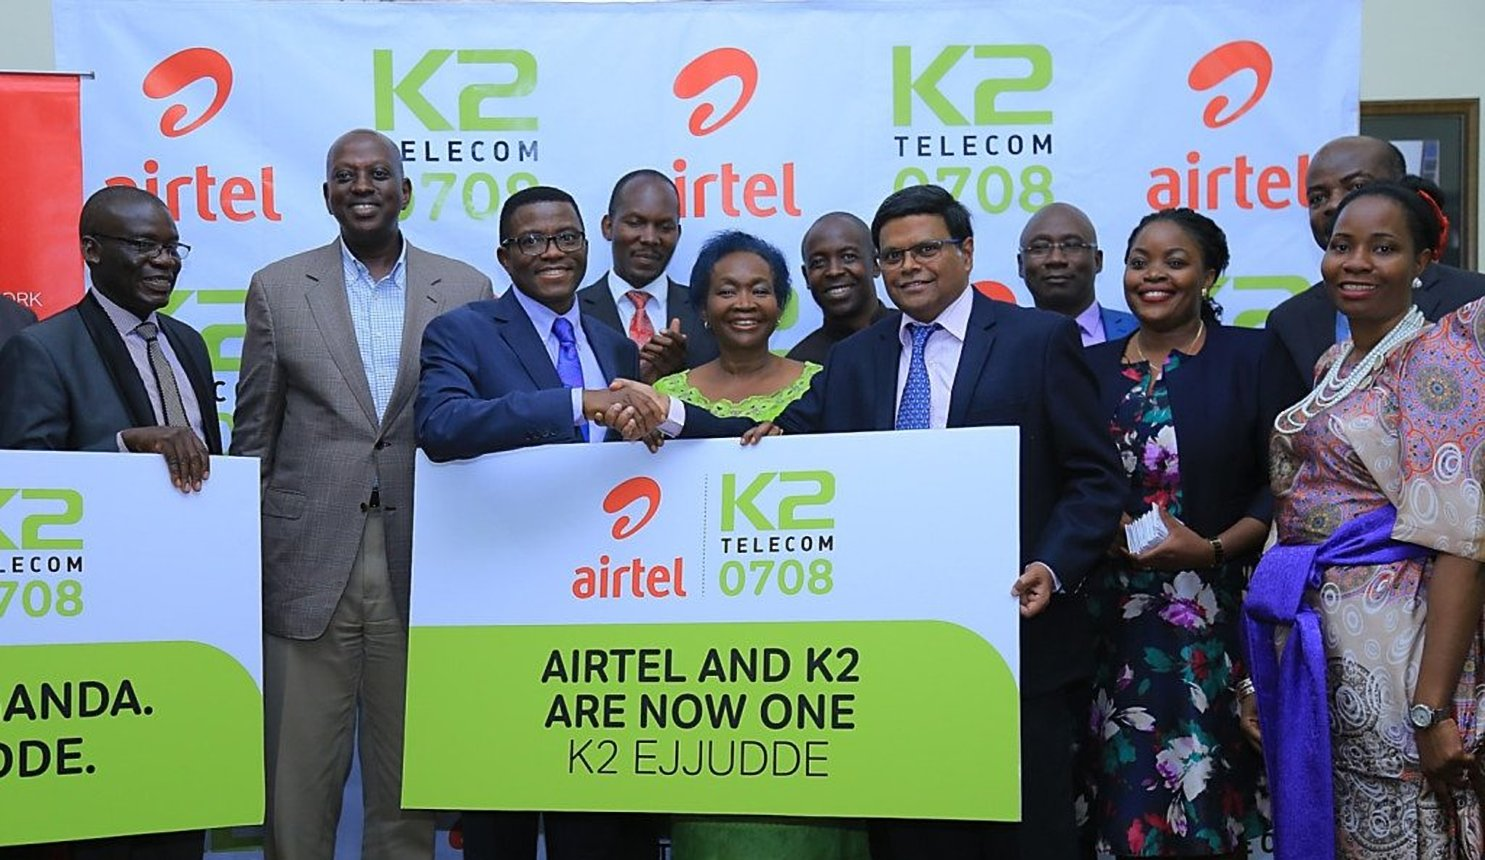 Airtel Ug and K2 Telecom signed a brand endorsement Agreement that will saw K2 subscribers enjoy all the services offered by the Airtel network (FILE PHOTO)